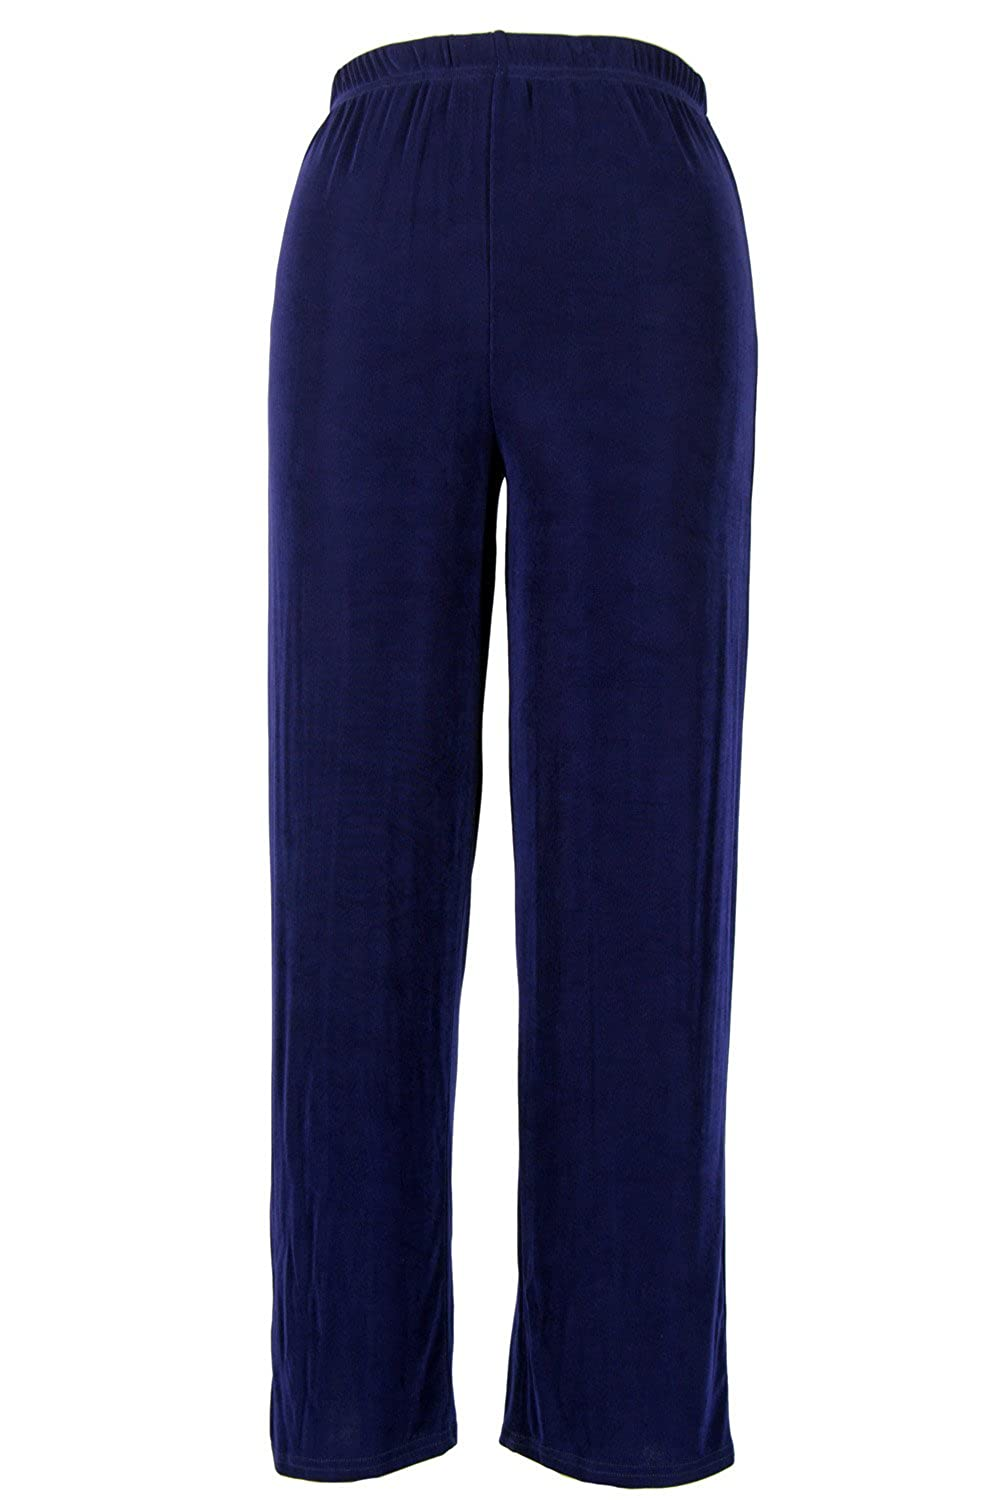 Jostar Womens Acetate Big Pants